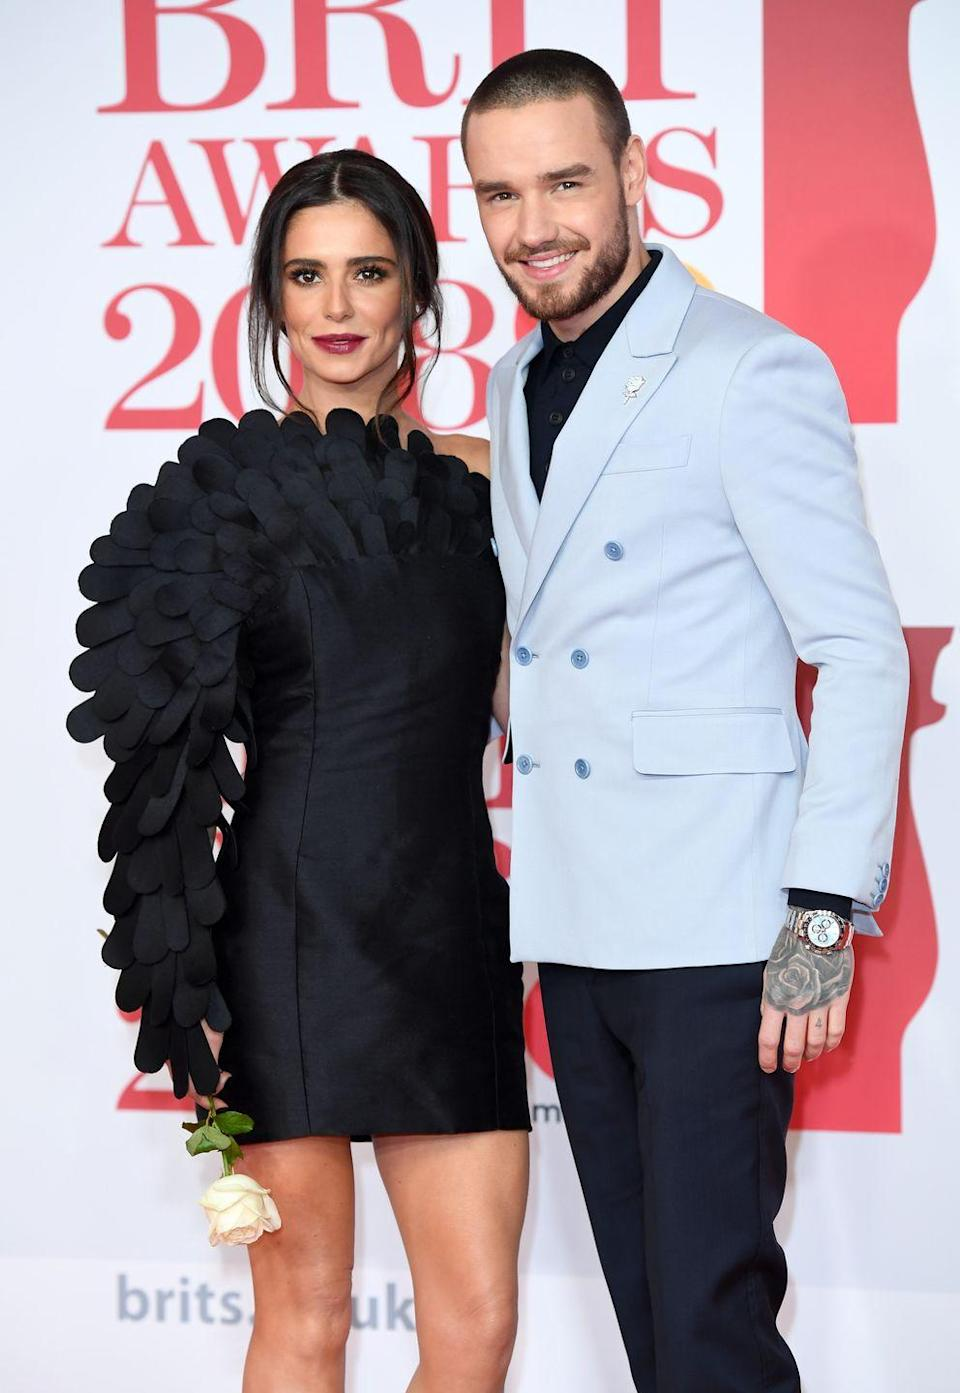 """<p>Believe it or not, Cheryl met Liam Payne in 2008 when he was only 14 years old and <a href=""""https://www.eonline.com/news/1151103/liam-payne-revisits-his-x-factor-audition-with-ex-cheryl-cole"""" rel=""""nofollow noopener"""" target=""""_blank"""" data-ylk=""""slk:auditioning for The X Factor"""" class=""""link rapid-noclick-resp"""">auditioning for <em>The X Factor</em></a>. Liam joined One Direction on the show, while Cheryl was a judge. In 2016, when Liam was more age-appropriate, the two reunited and began dating. Their relationship lasted two and a half years and the couple share a son together.</p>"""